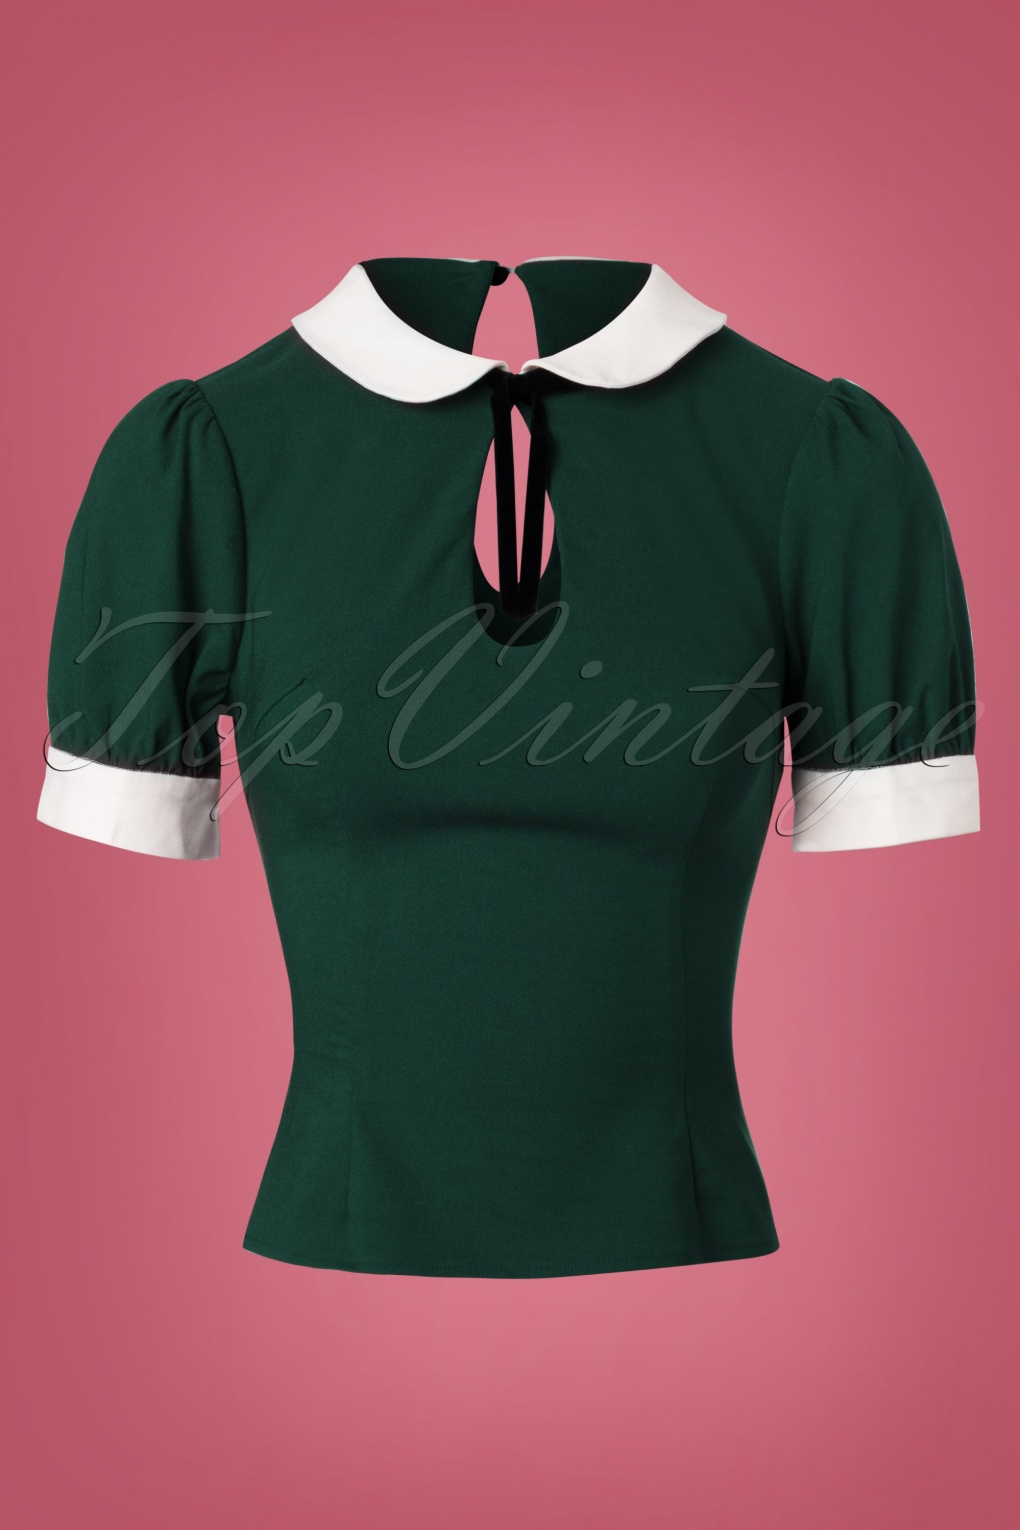 1930s Style Blouses, Shirts, Tops | Vintage Blouses 40s Khloe Top in Green £30.60 AT vintagedancer.com